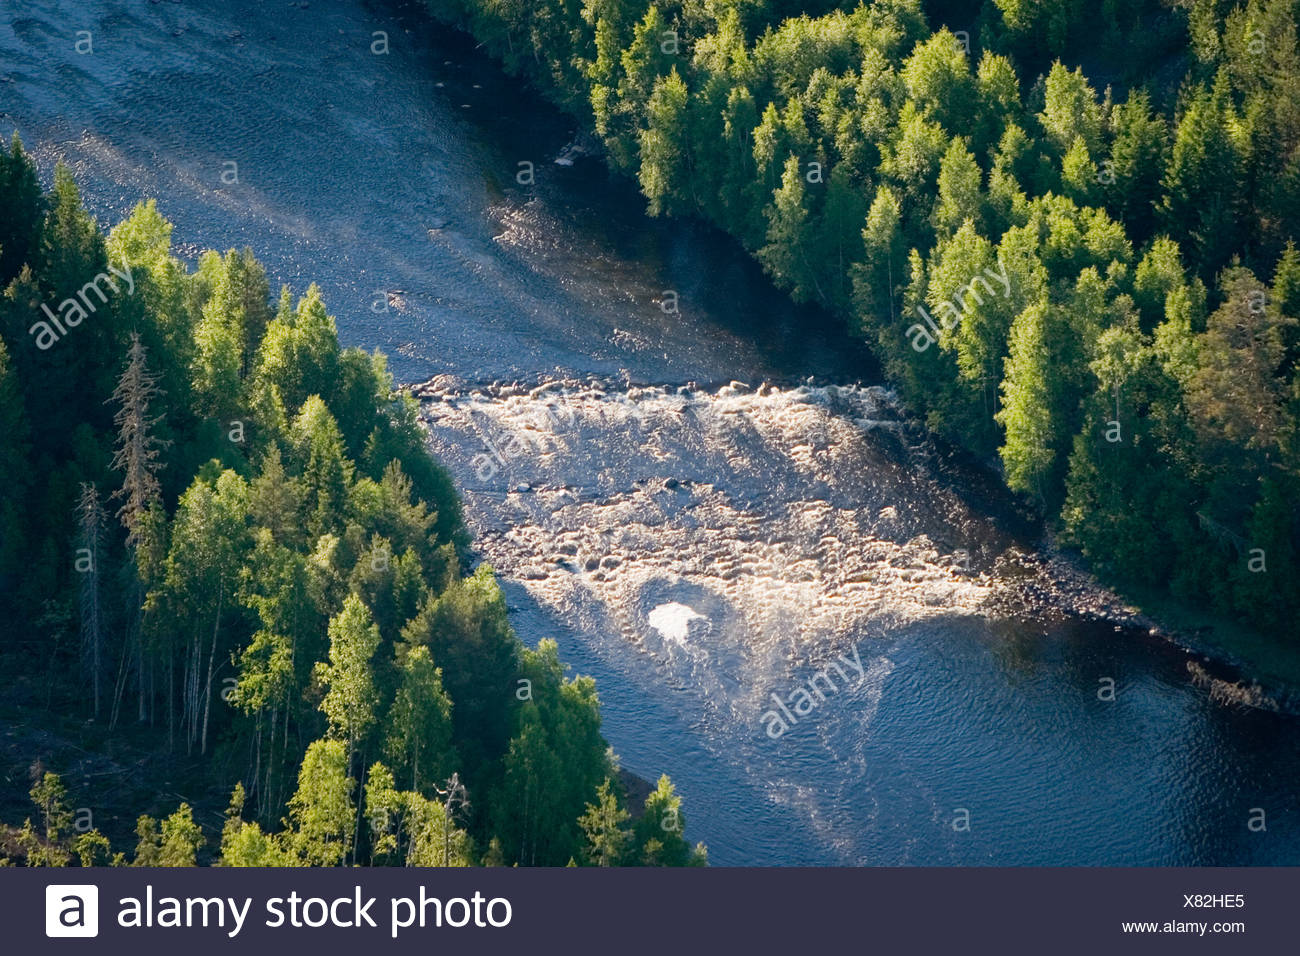 A river in a forest, Sweden. - Stock Image